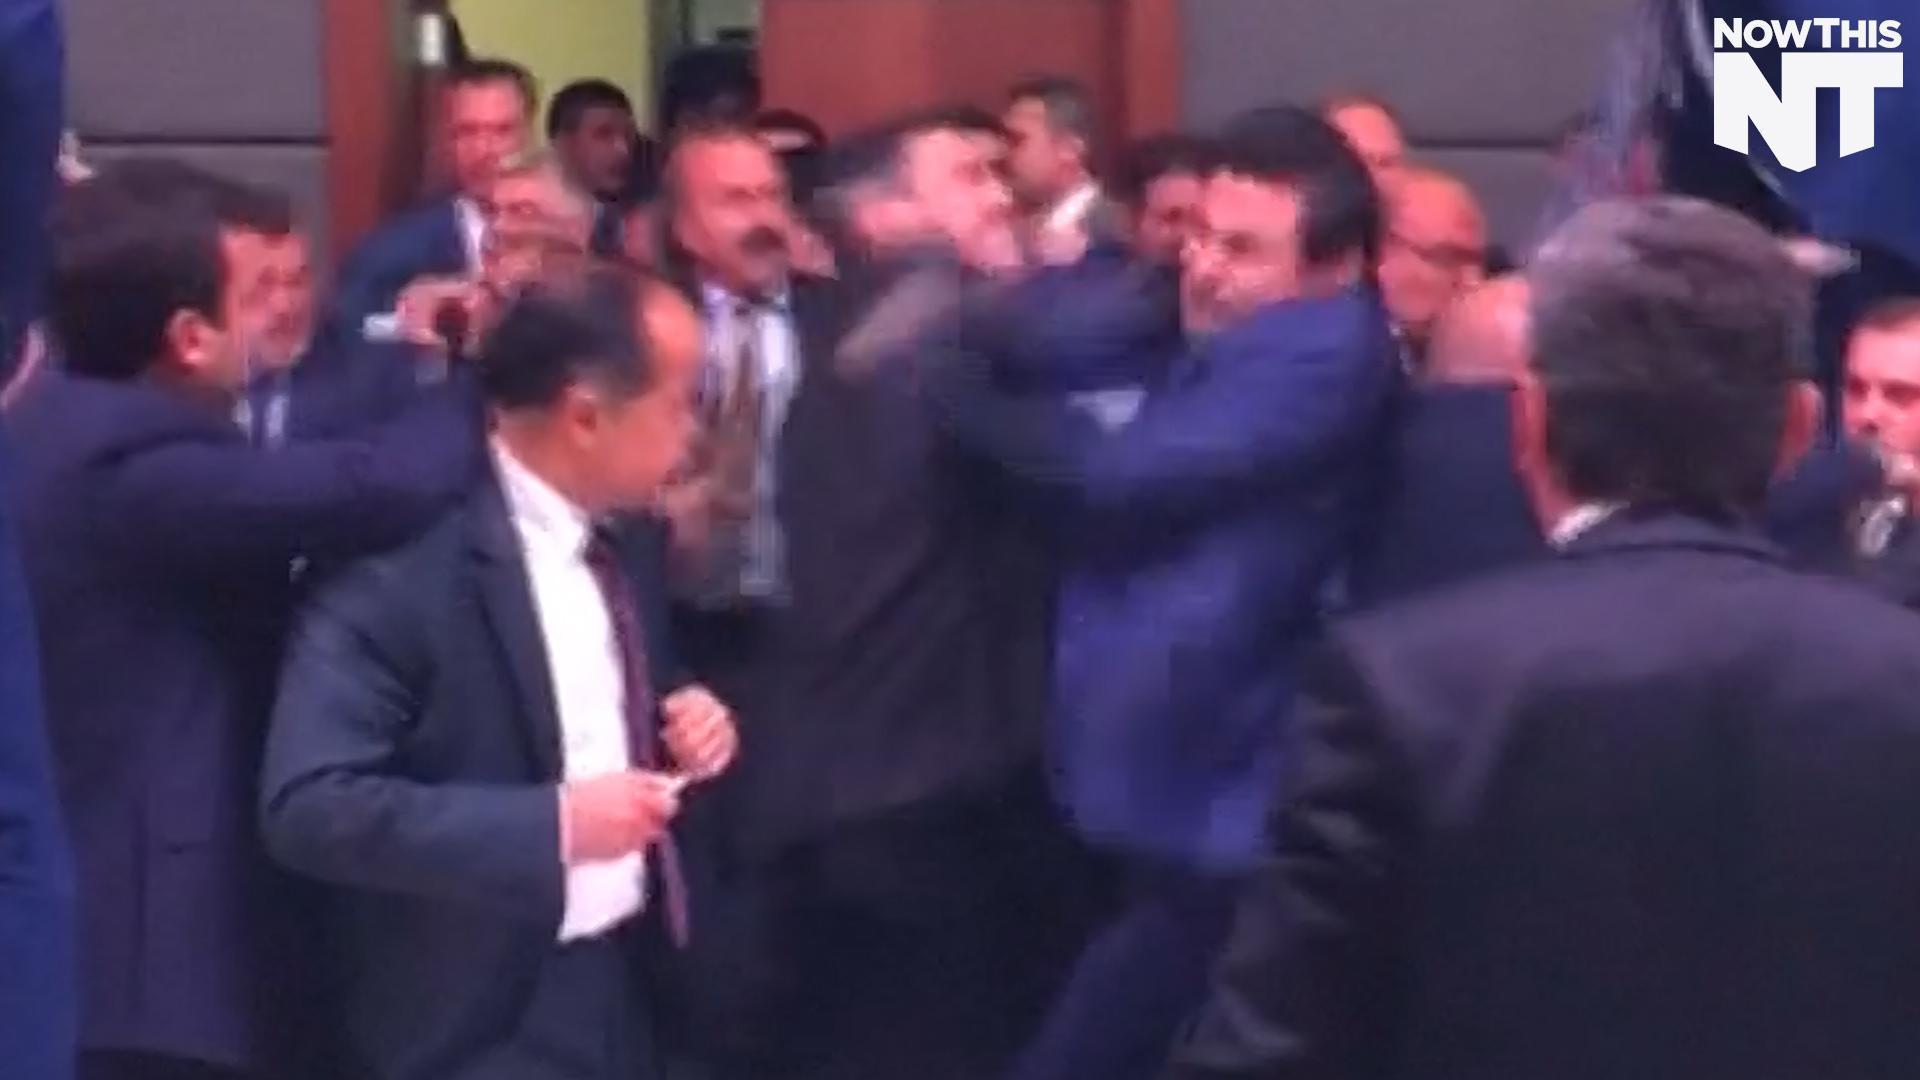 Watch These Turkish Politicians Duke It Out In Parliament